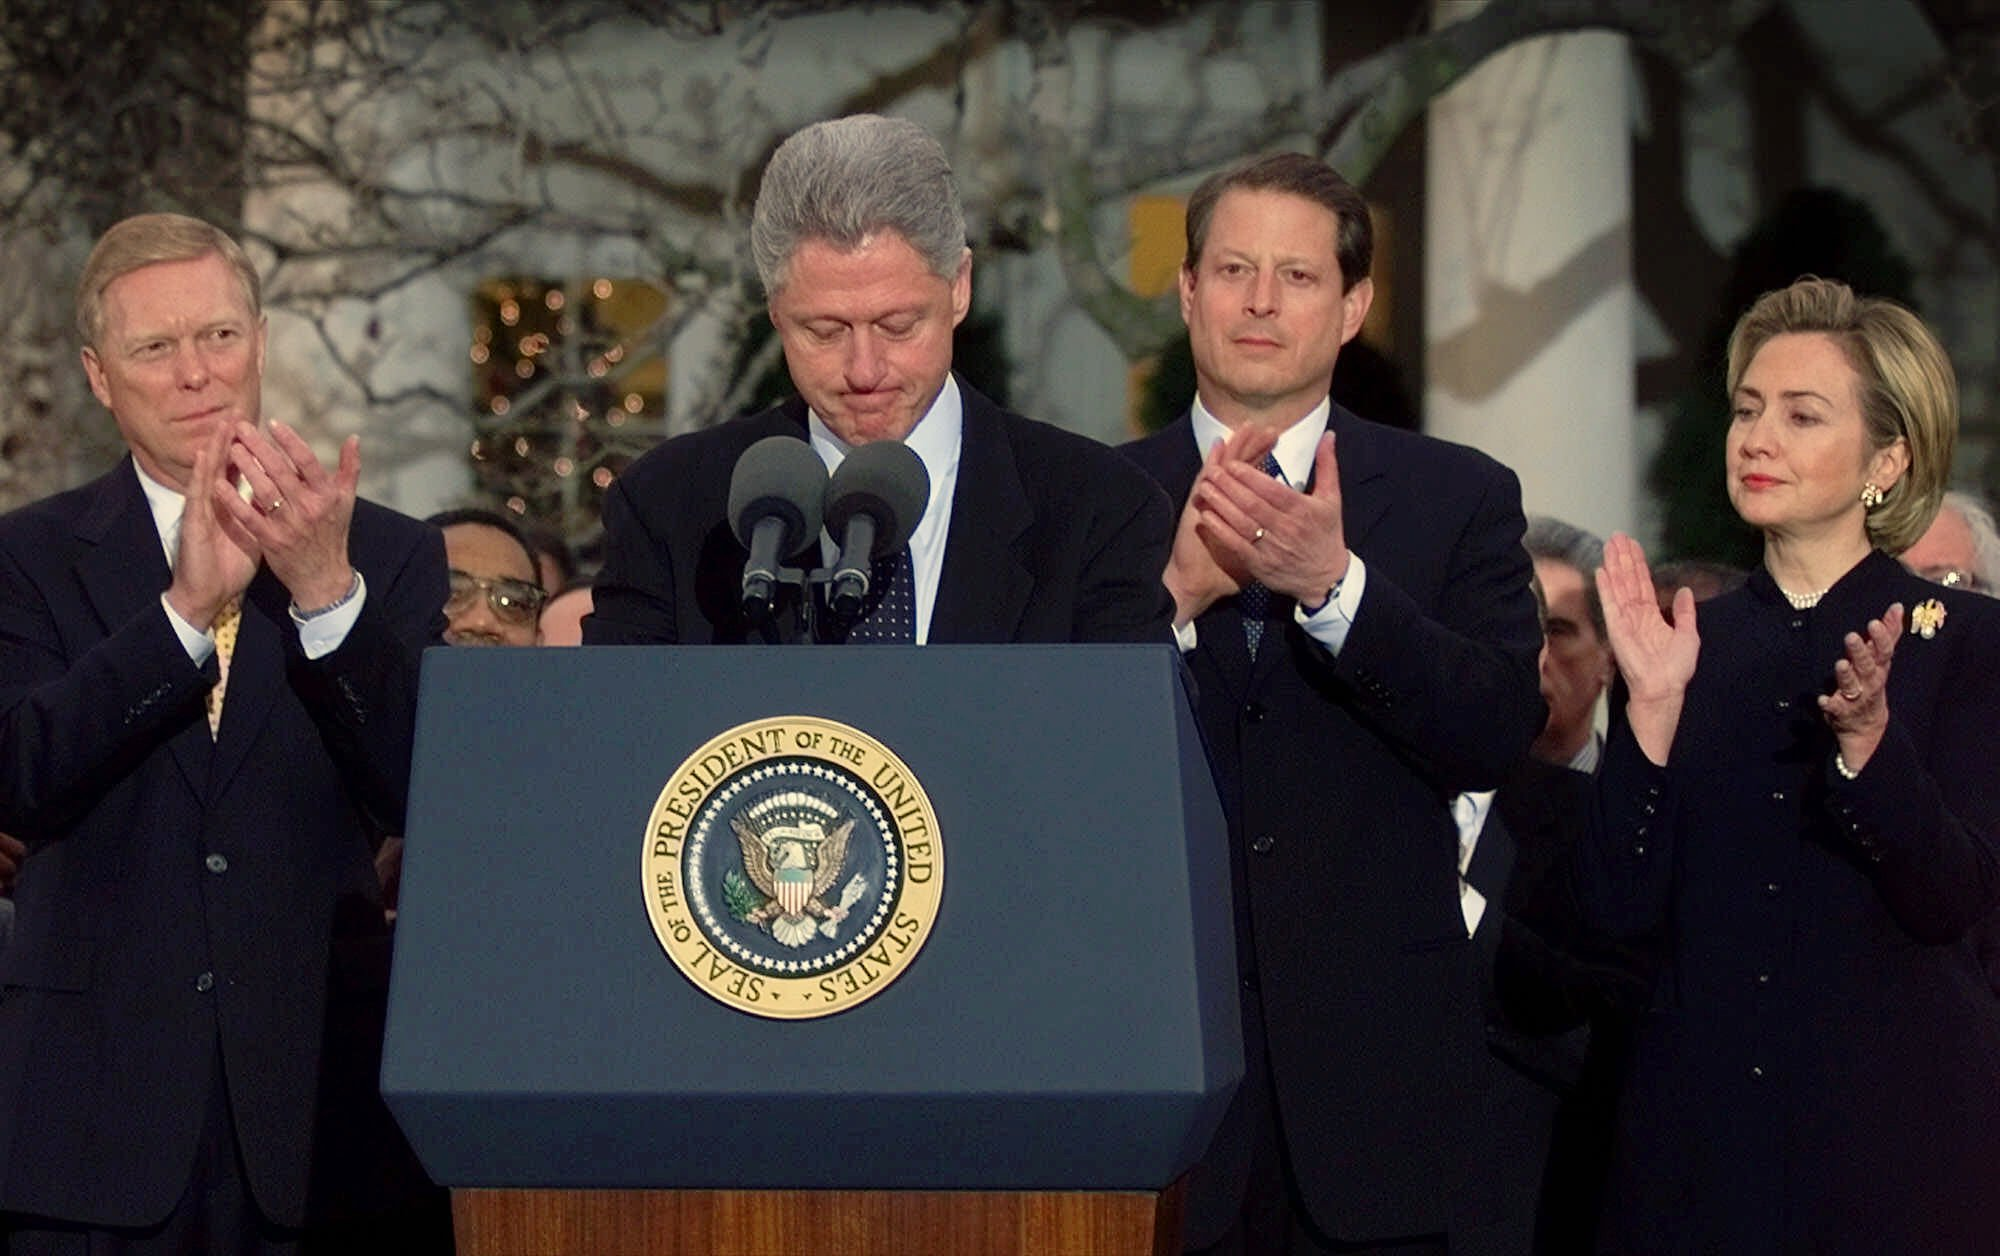 History offers little precedent for impeaching U.S. presidents